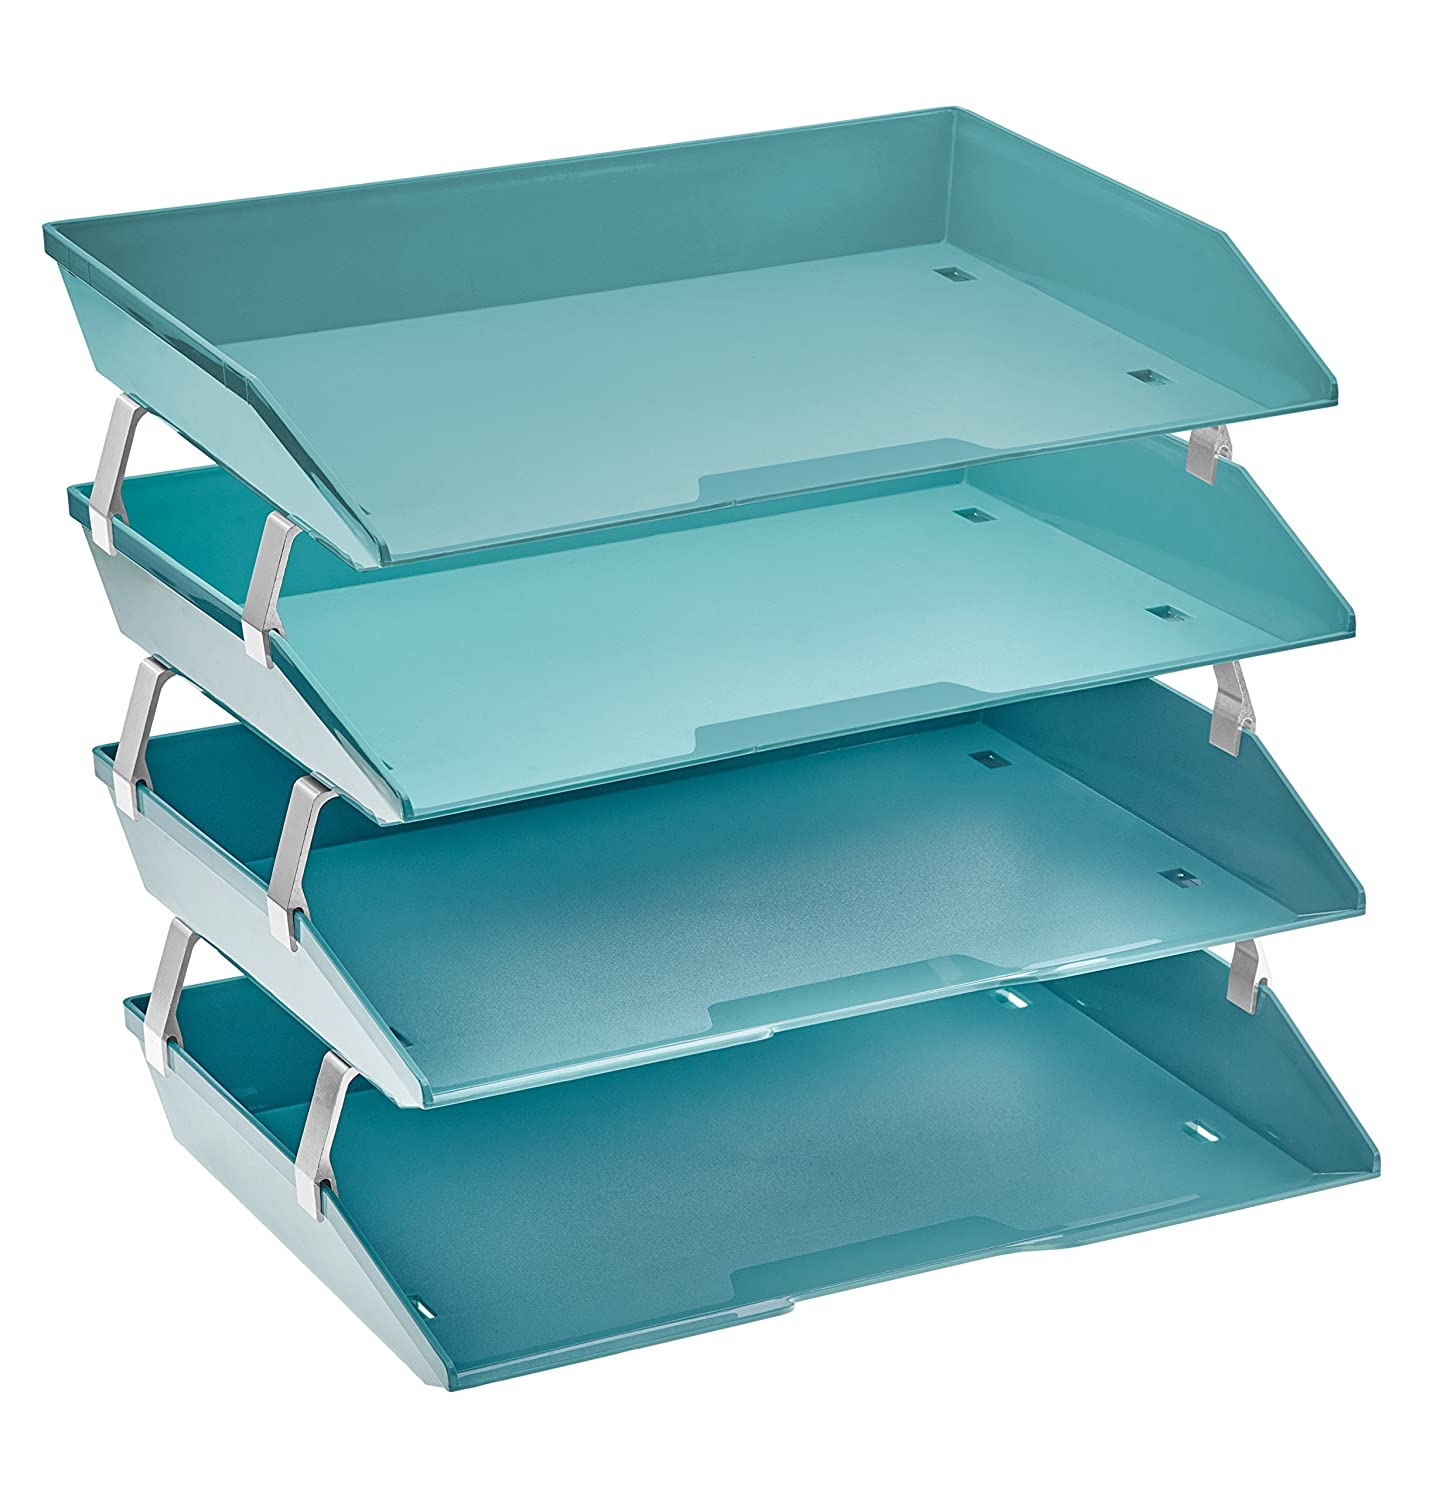 Acrimet Facility 4 Tier Letter Tray Side Load Plastic Desktop File Organizer (Solid Green Color)